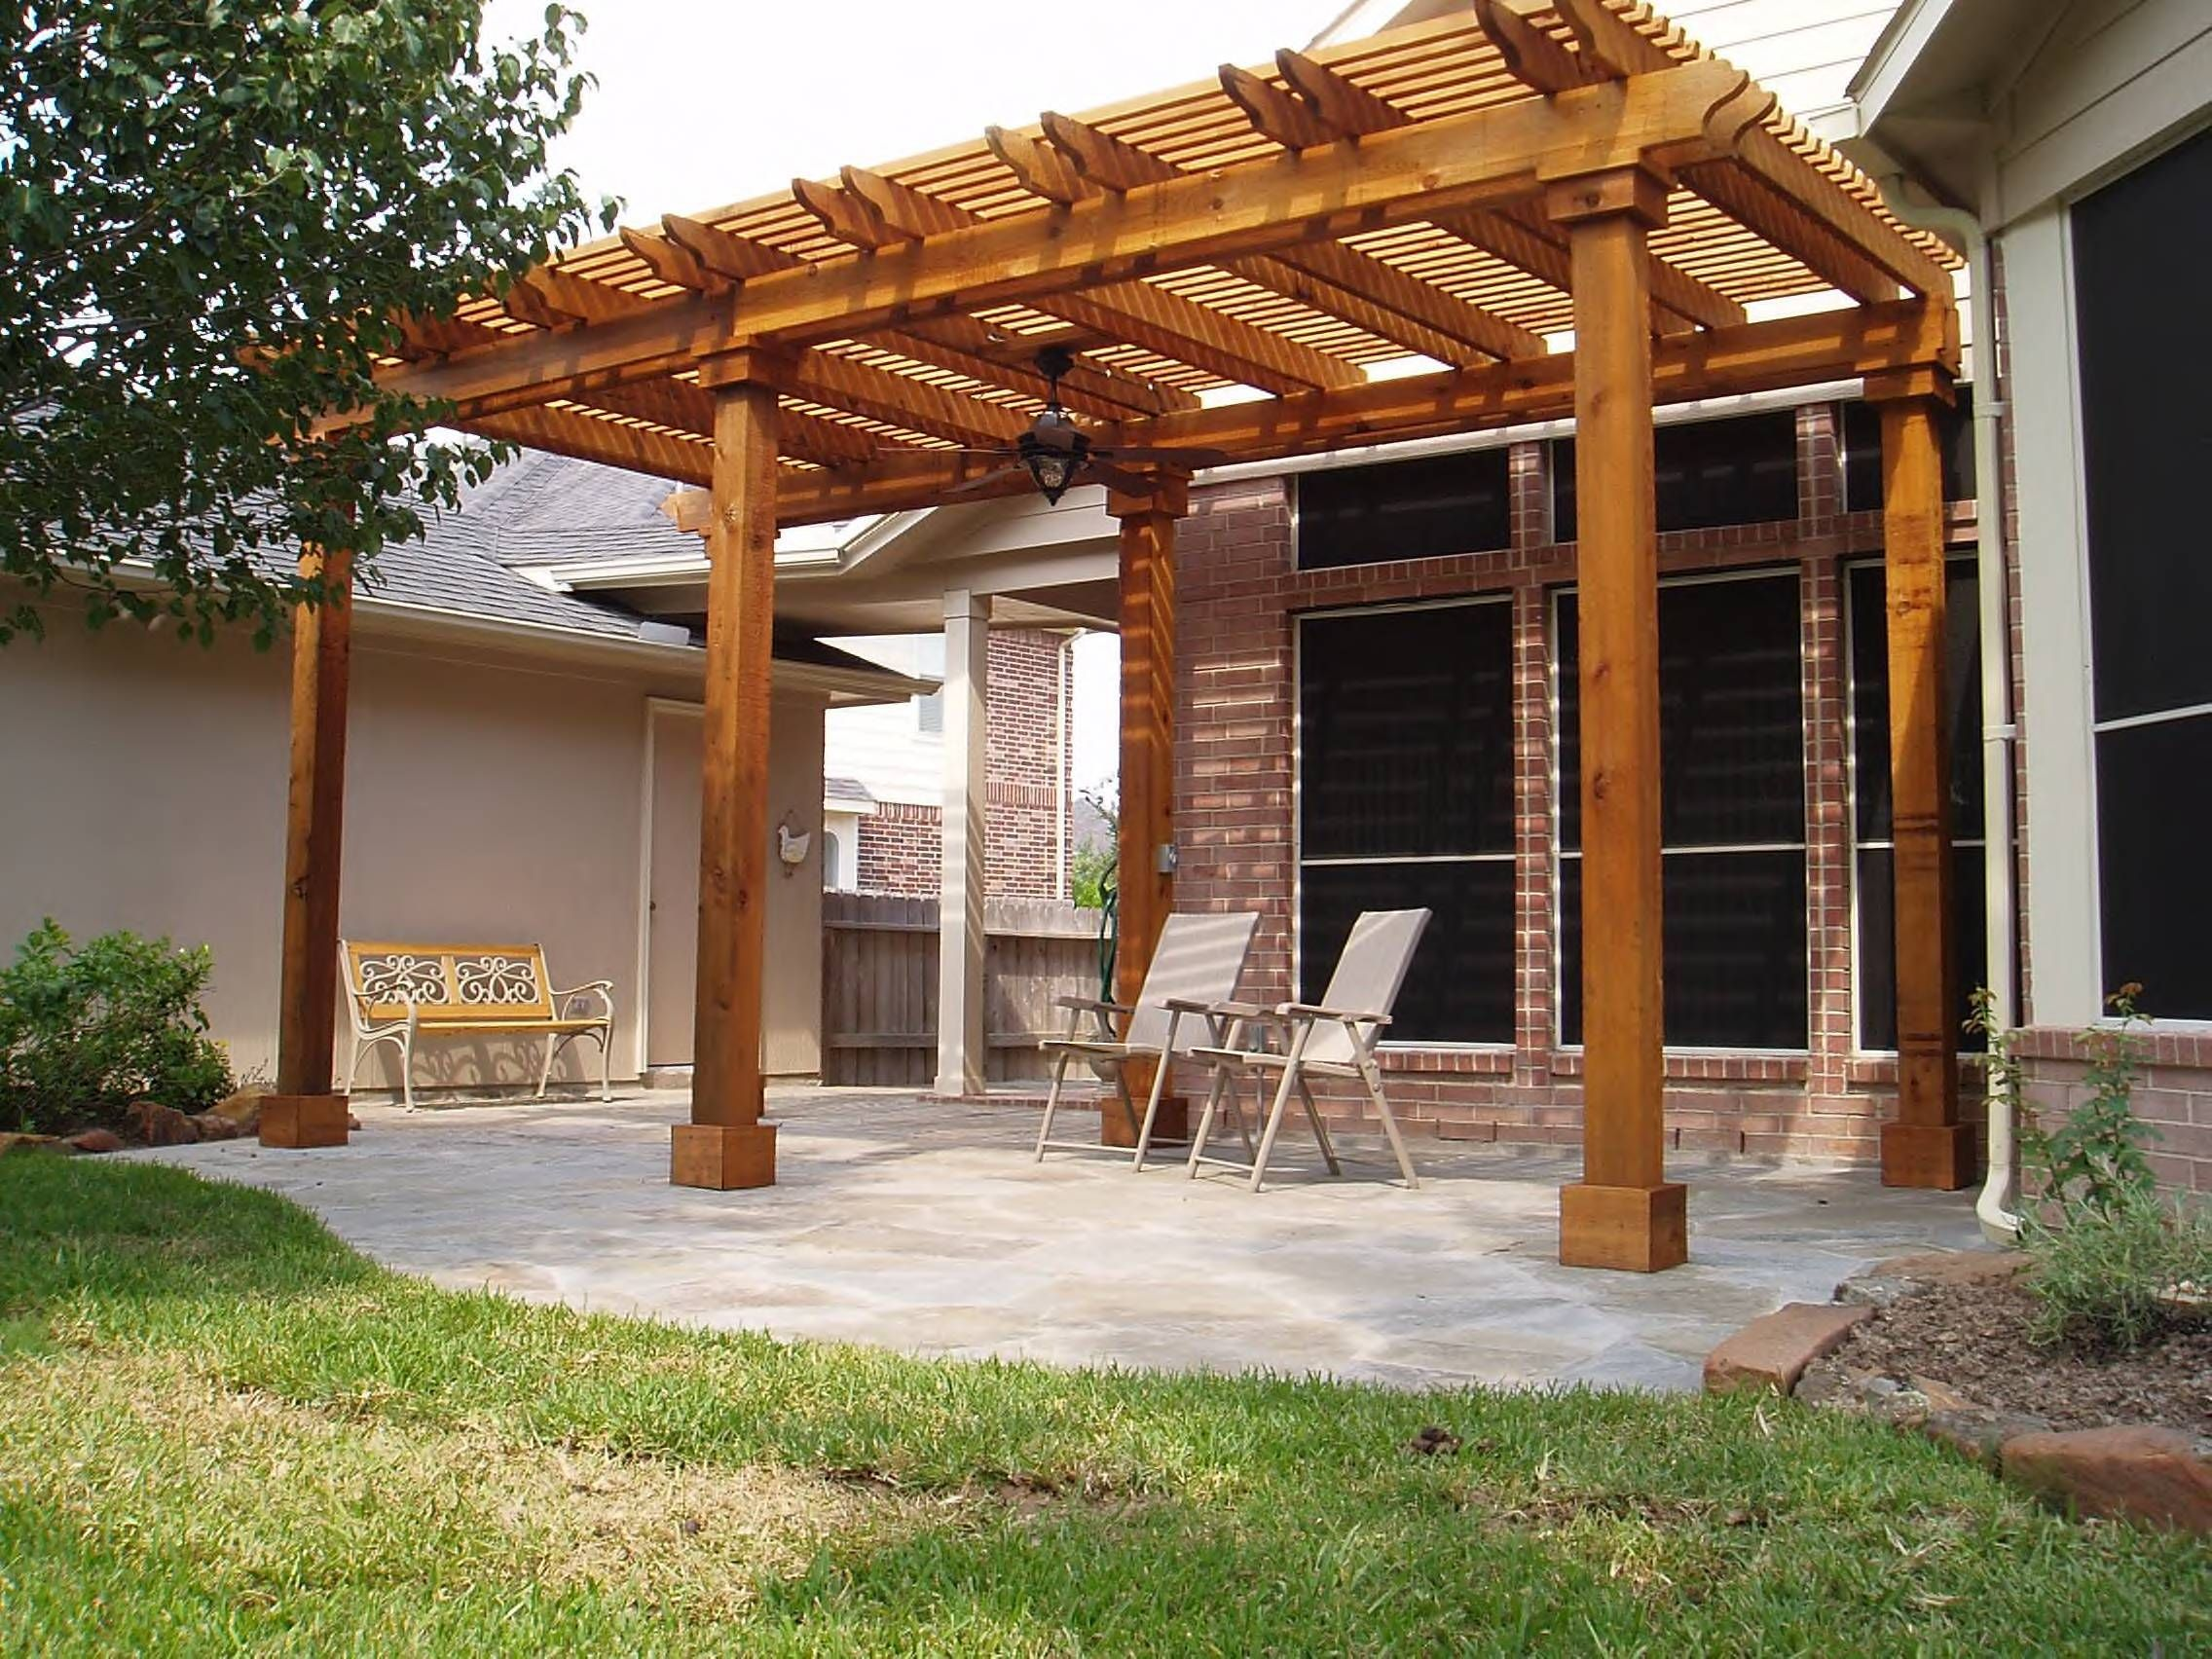 Mahogany Pergola Deck Roof Cover With Simple Furniture In Backyard ...